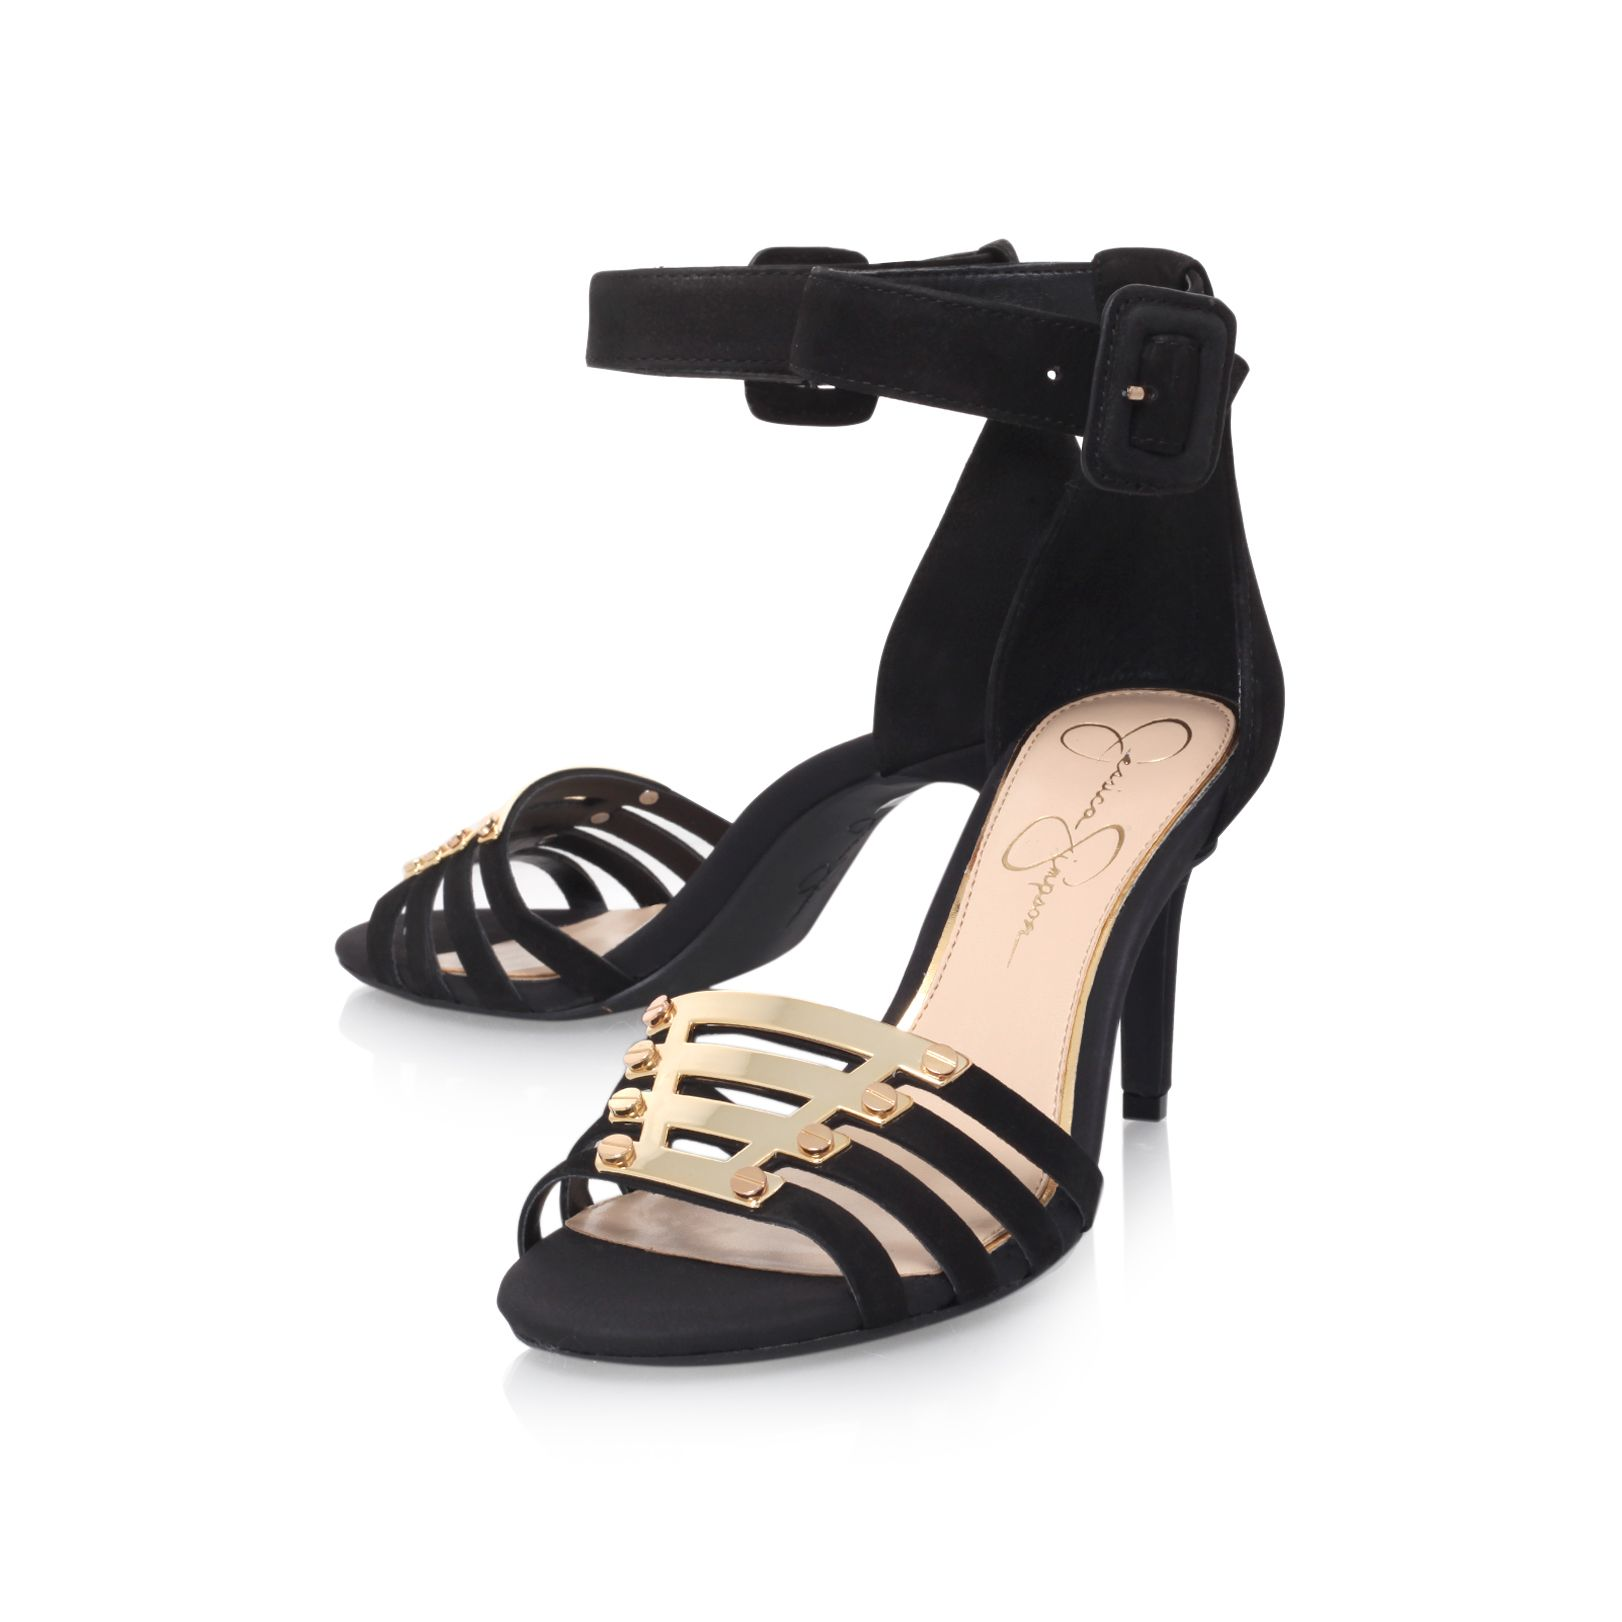 Massulo high heeled suer sandals